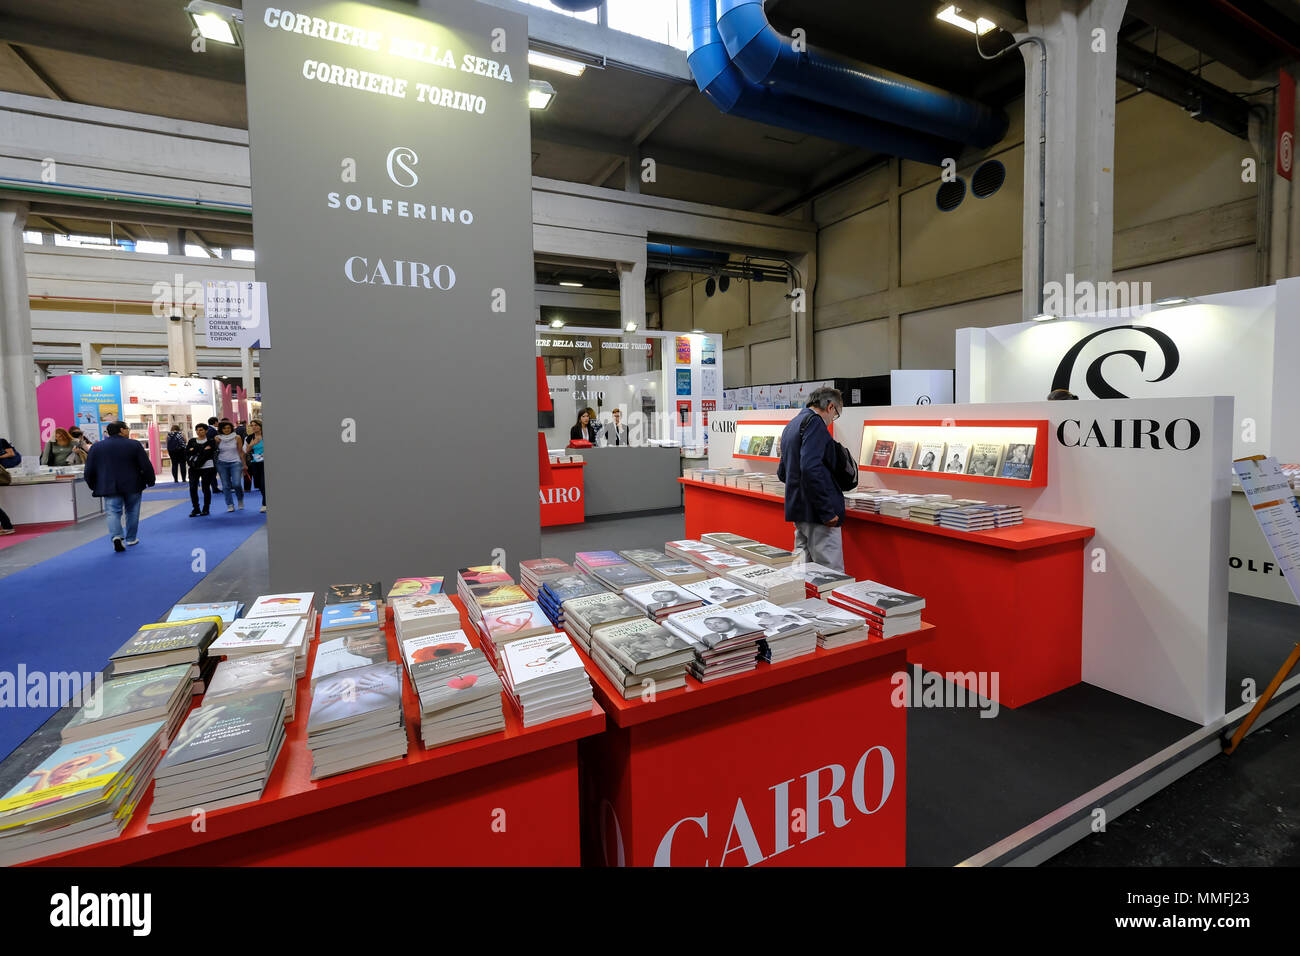 Turin, Piedmont, Italy, 10th May, 2018. International Book fair 2018,first day.Cairo publisher's stand Credit: RENATO VALTERZA/Alamy Live News - Stock Image